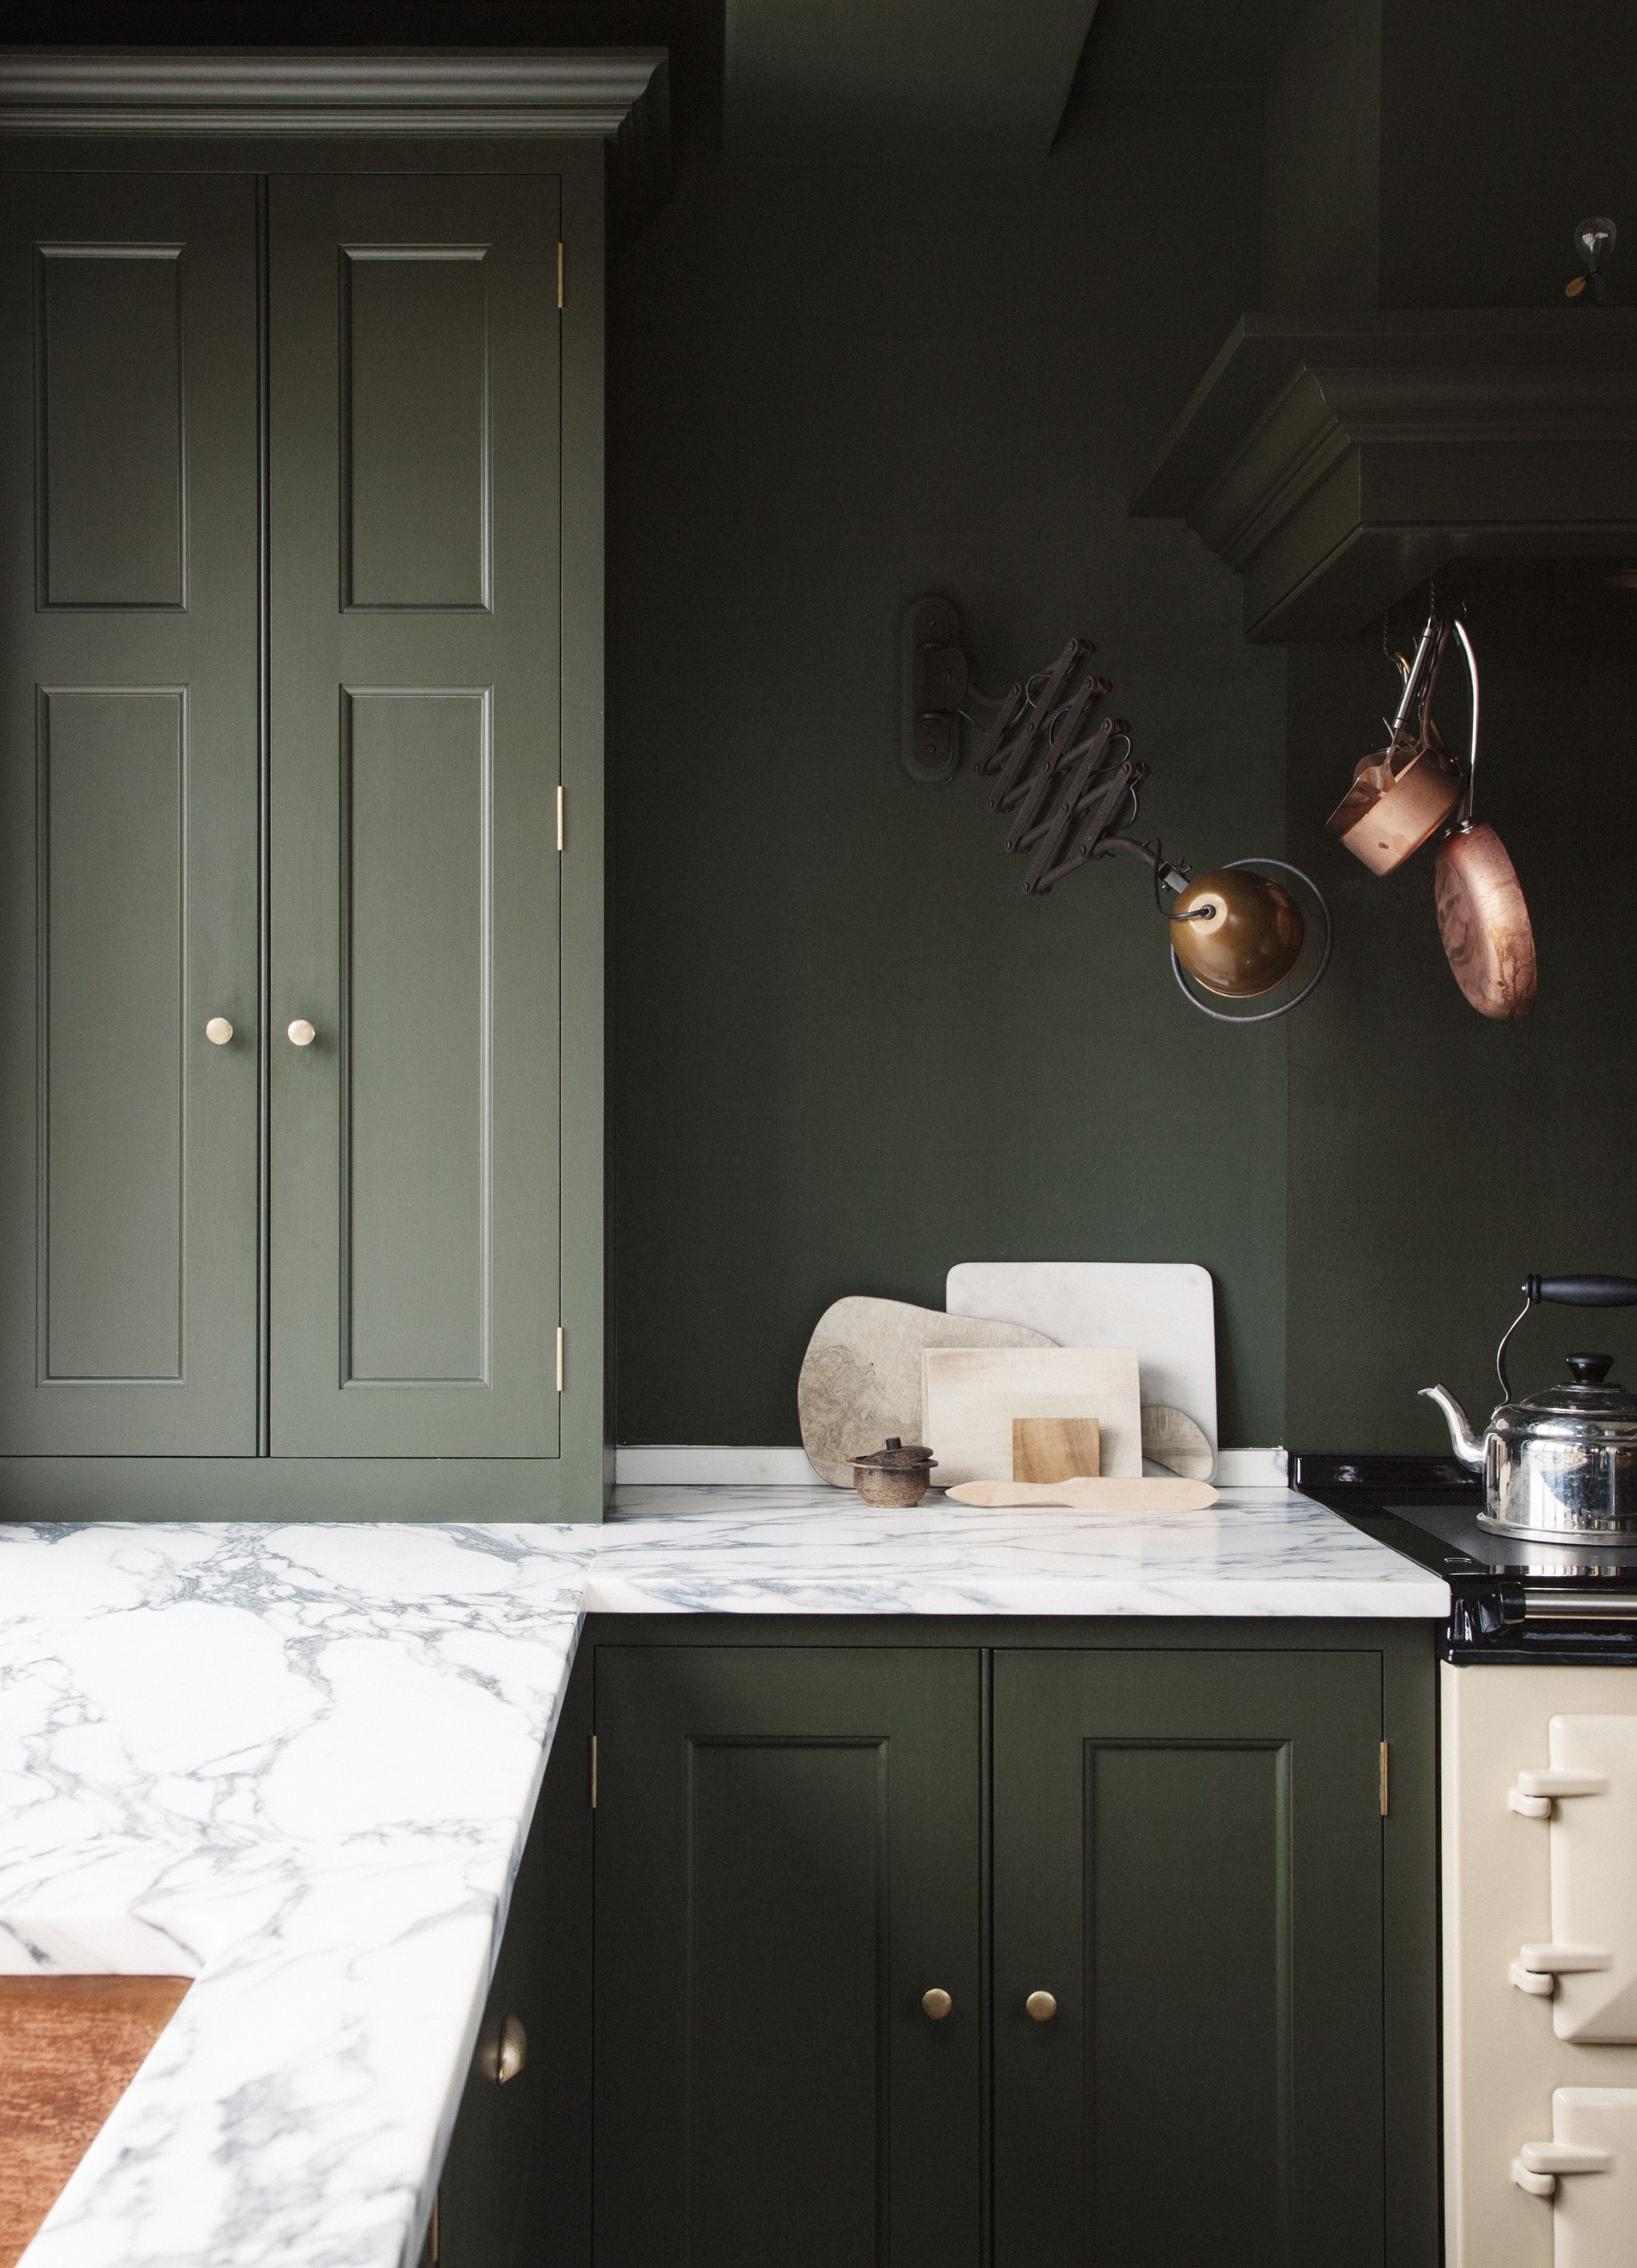 Green Kitchen Cabinet And Matching Wall Colour INSPIRED - Green colour kitchen cabinets